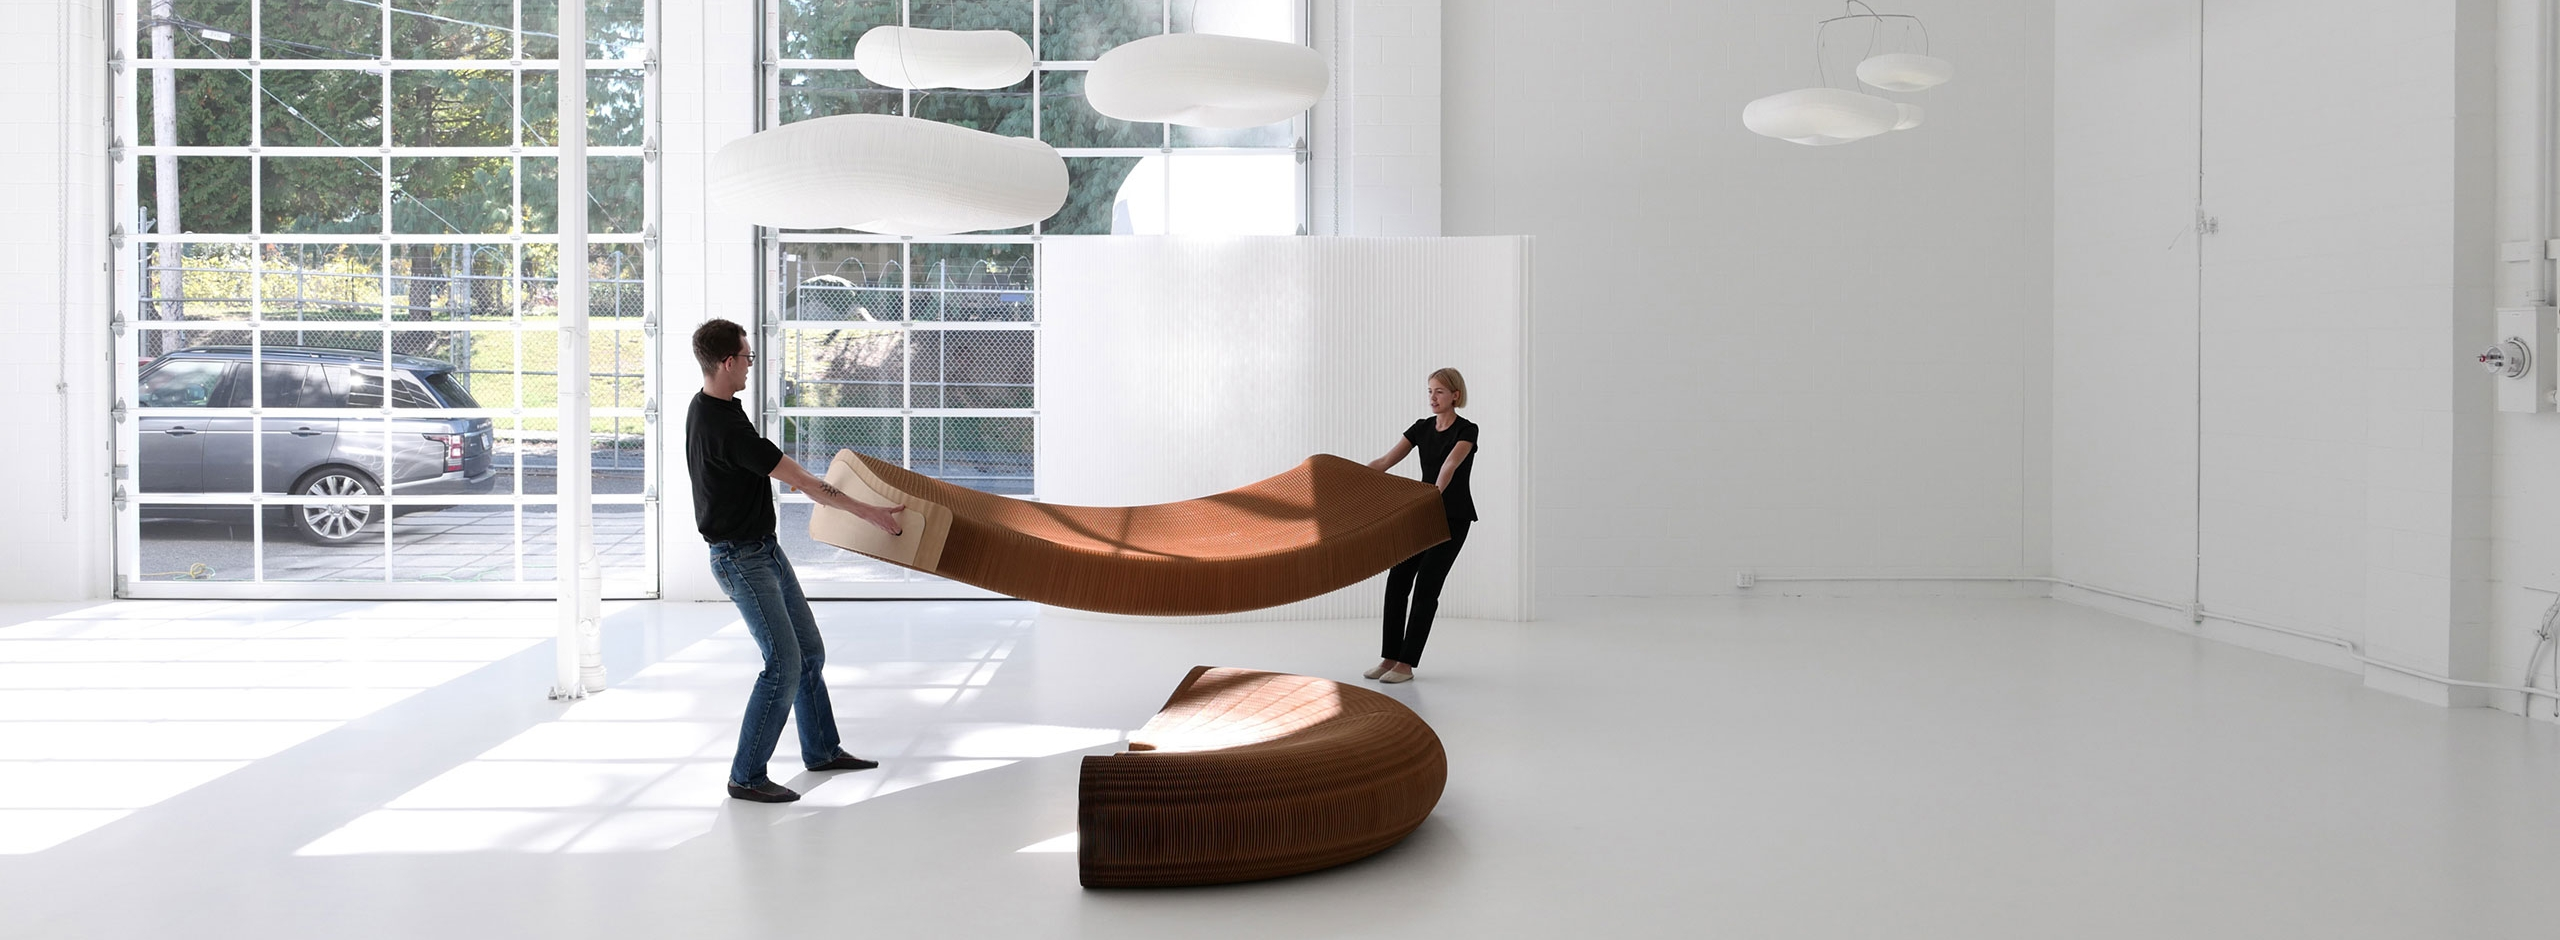 Stretchy paper furniture, setting up the molo softseating lounger.